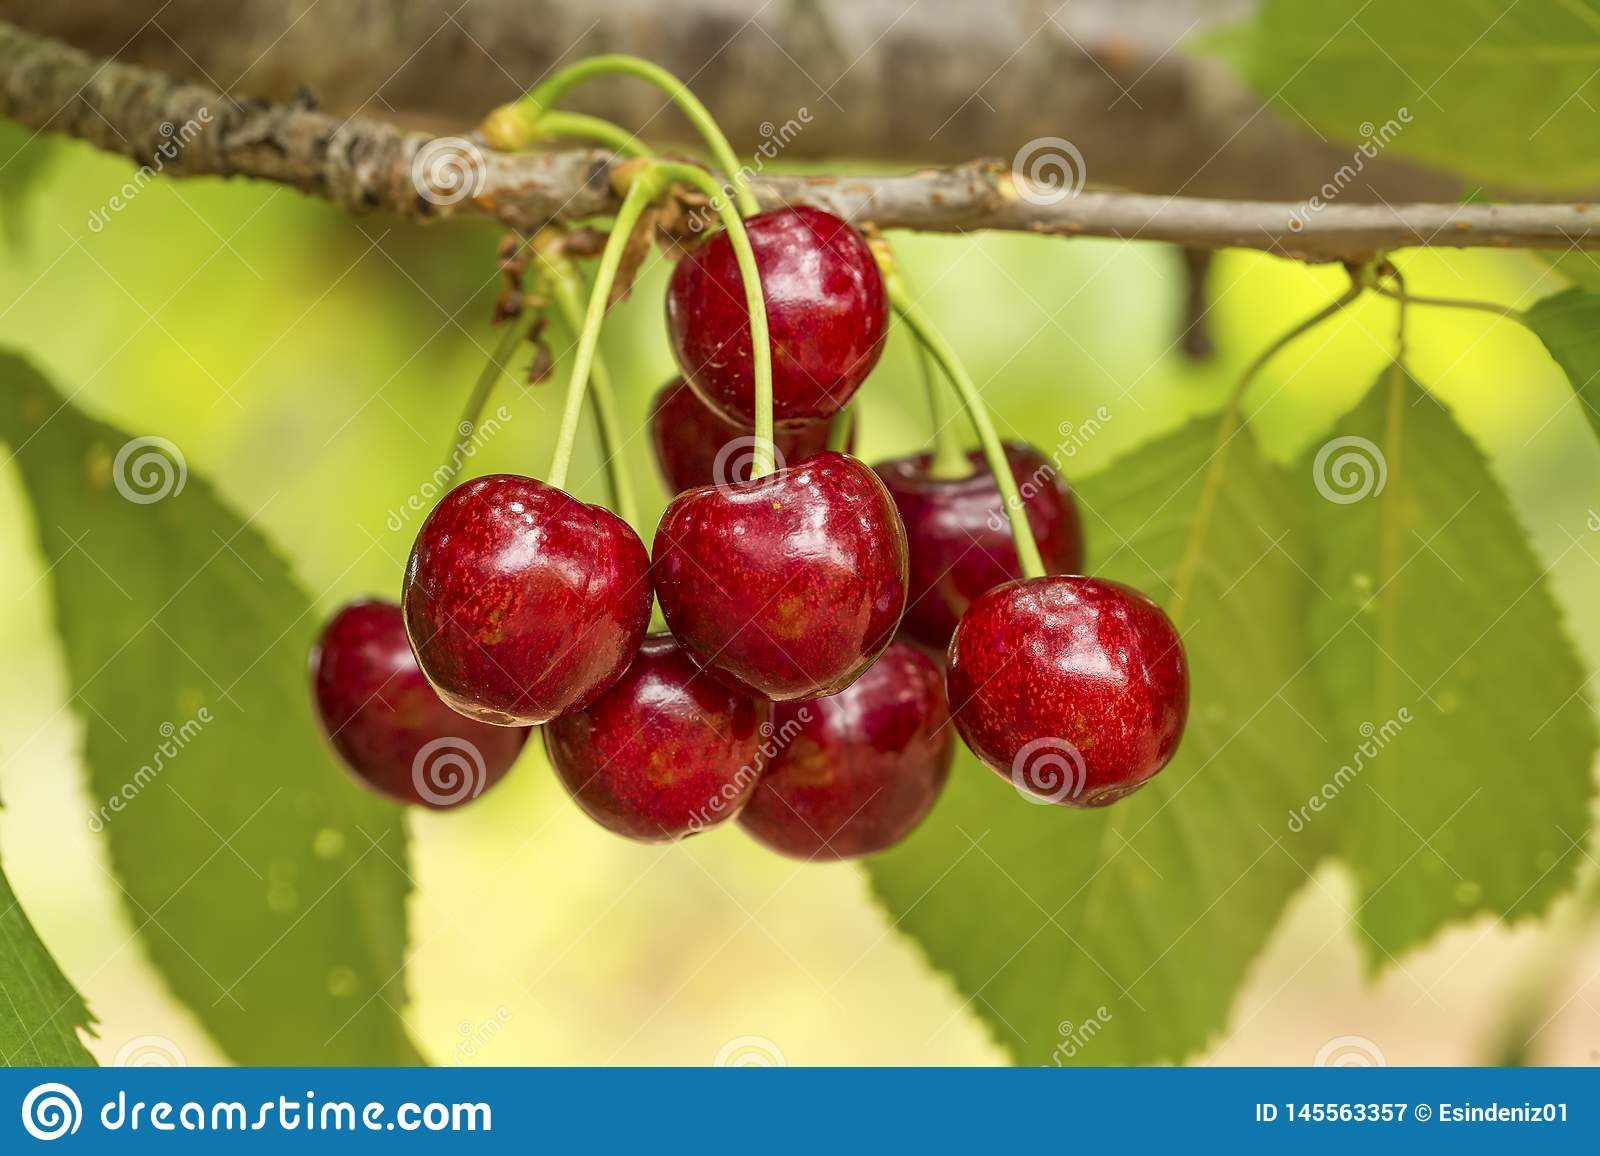 Close up of a twig with fresh juicy cherries. Shallow depth of focus. Concept farming